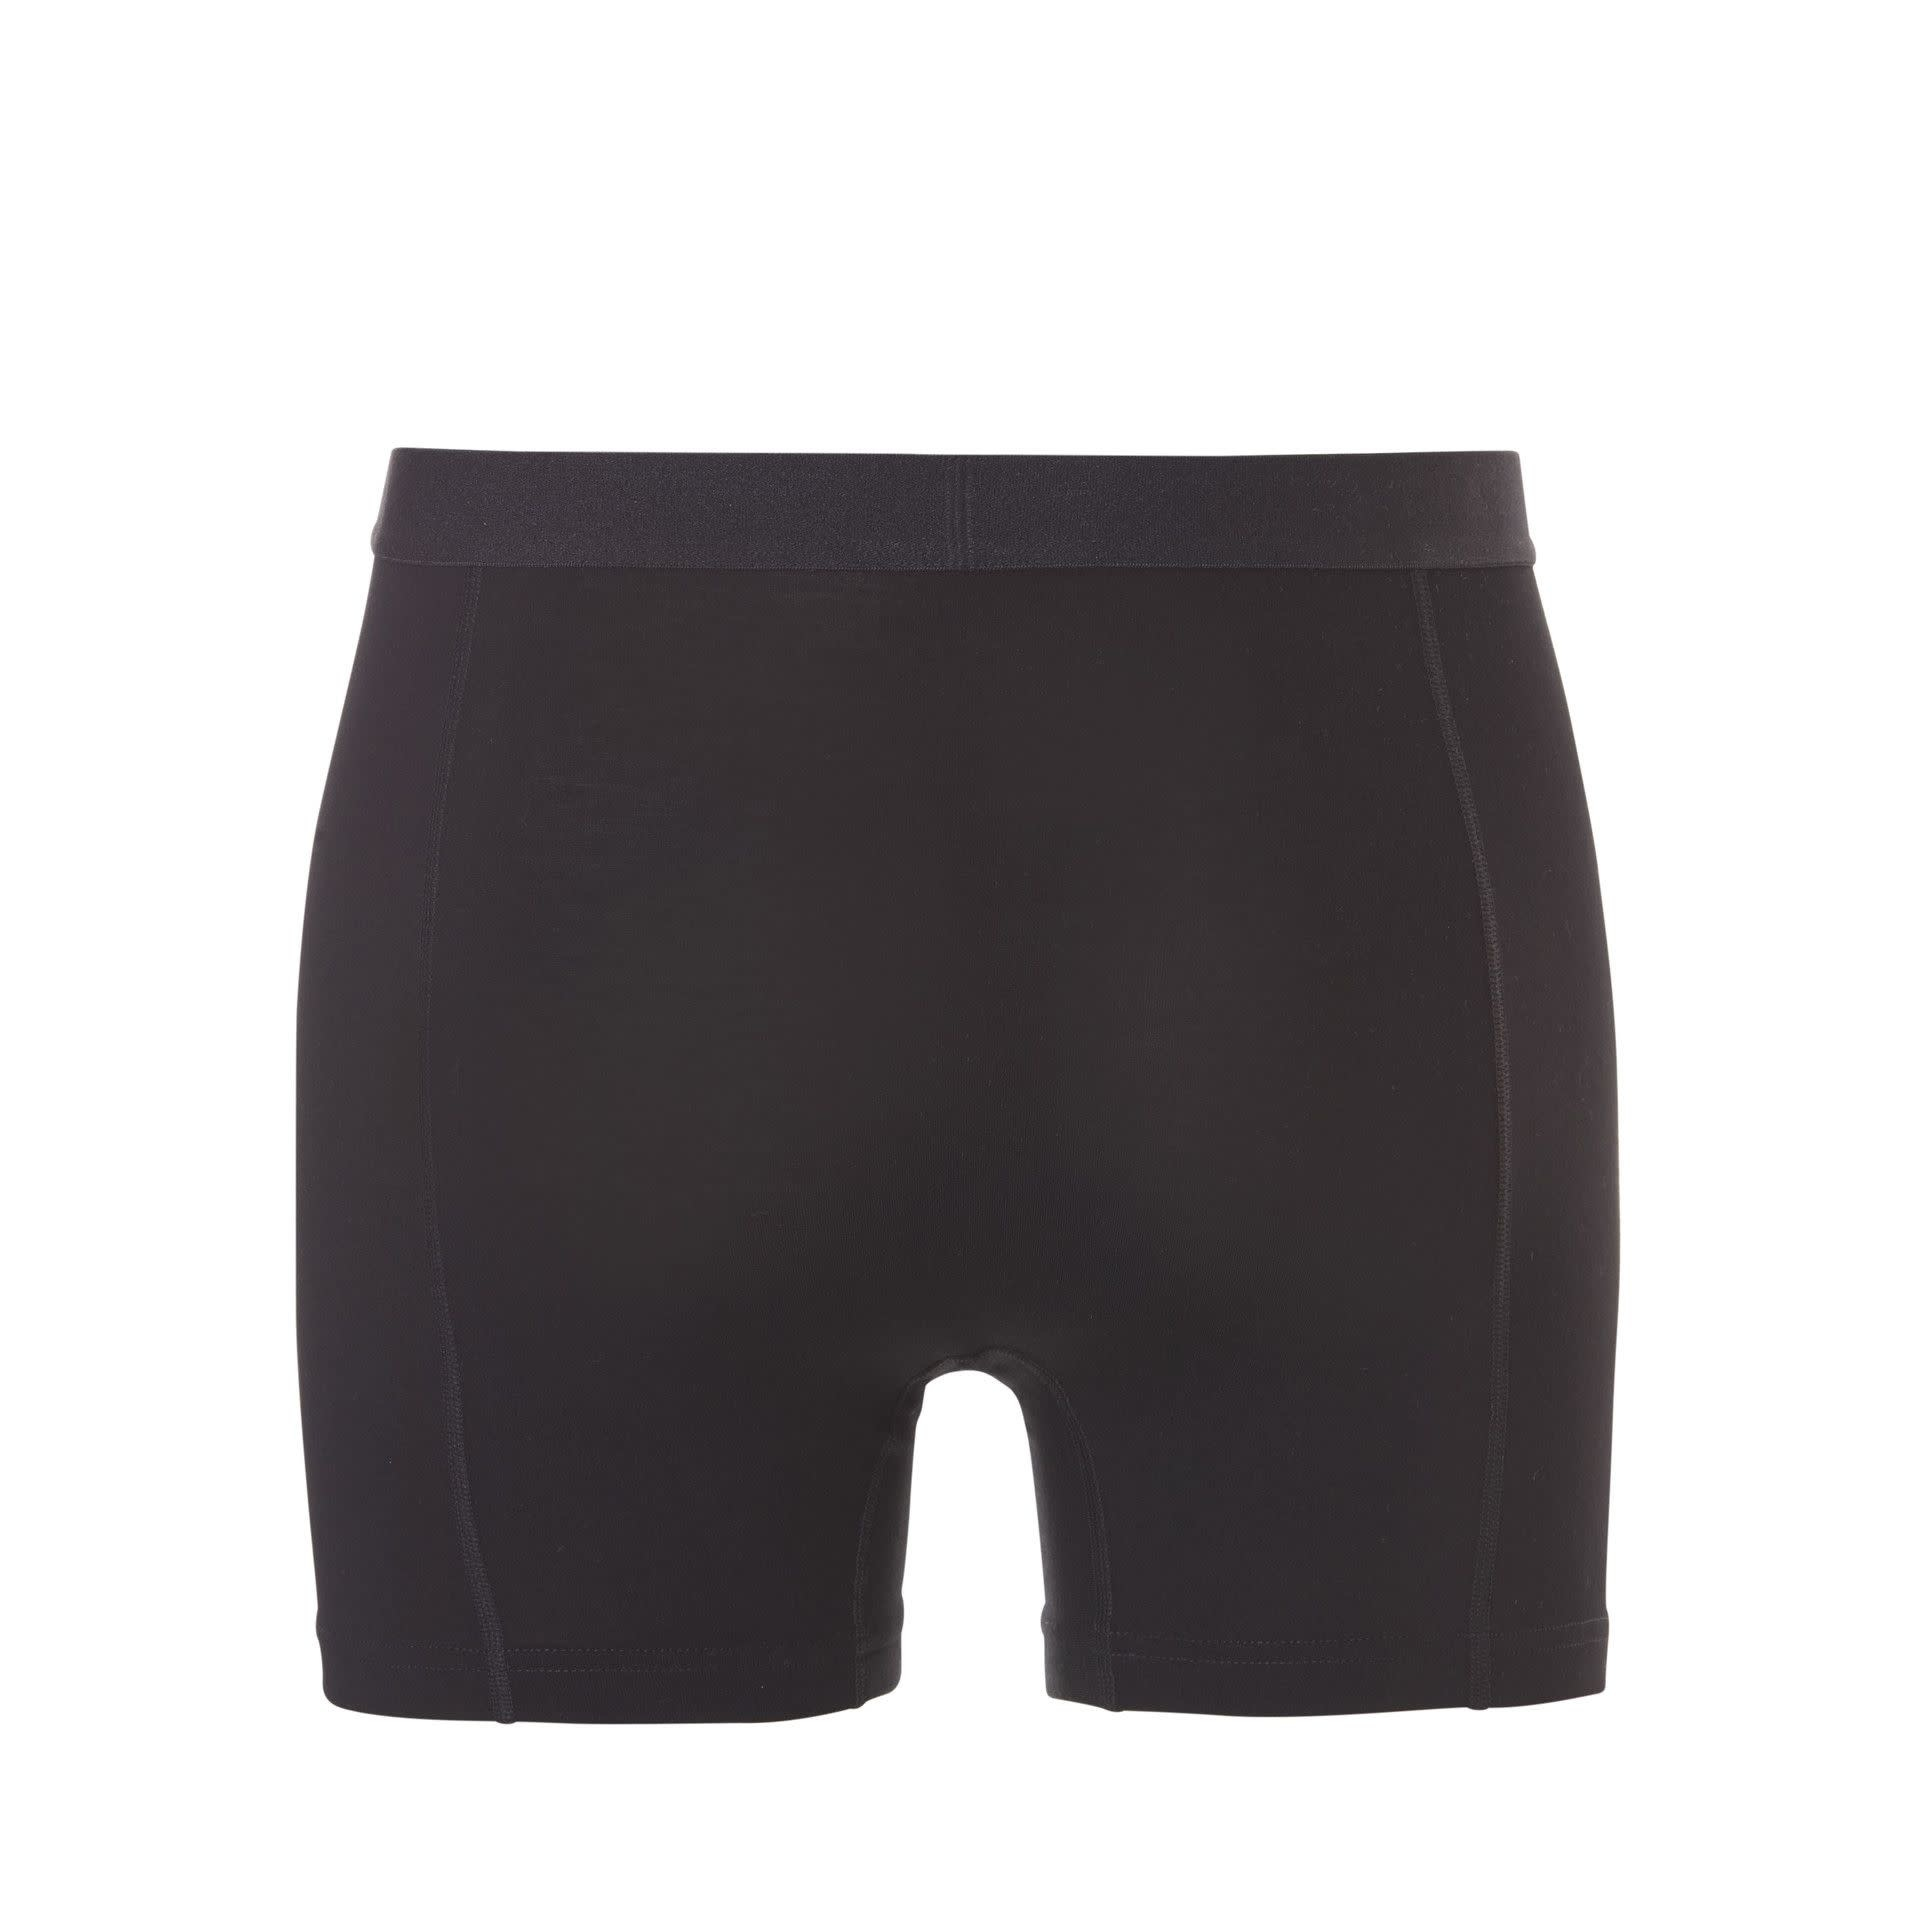 Ten Cate Ten Cate 30859 Bamboo Boxer Shorts 2 Pack Black